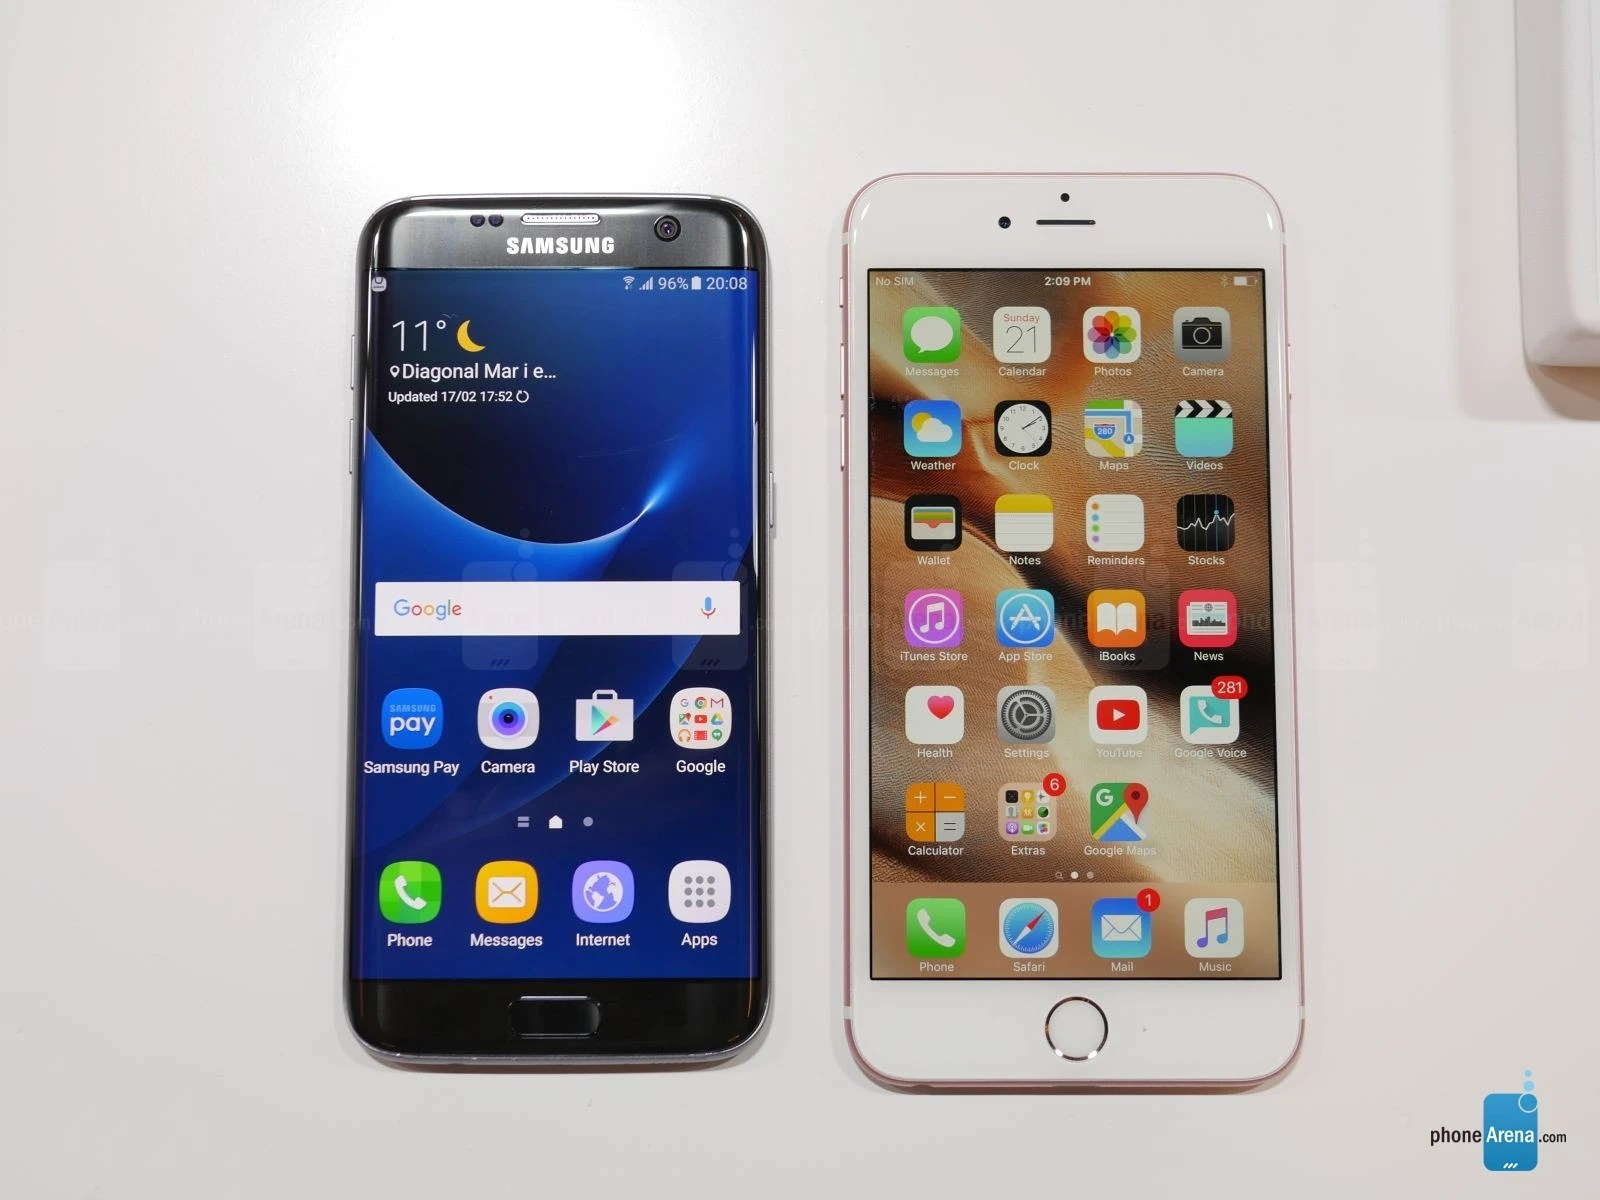 Iphone Misure Samsung Galaxy S7 Edge Vs Apple Iphone 6s Plus First Look